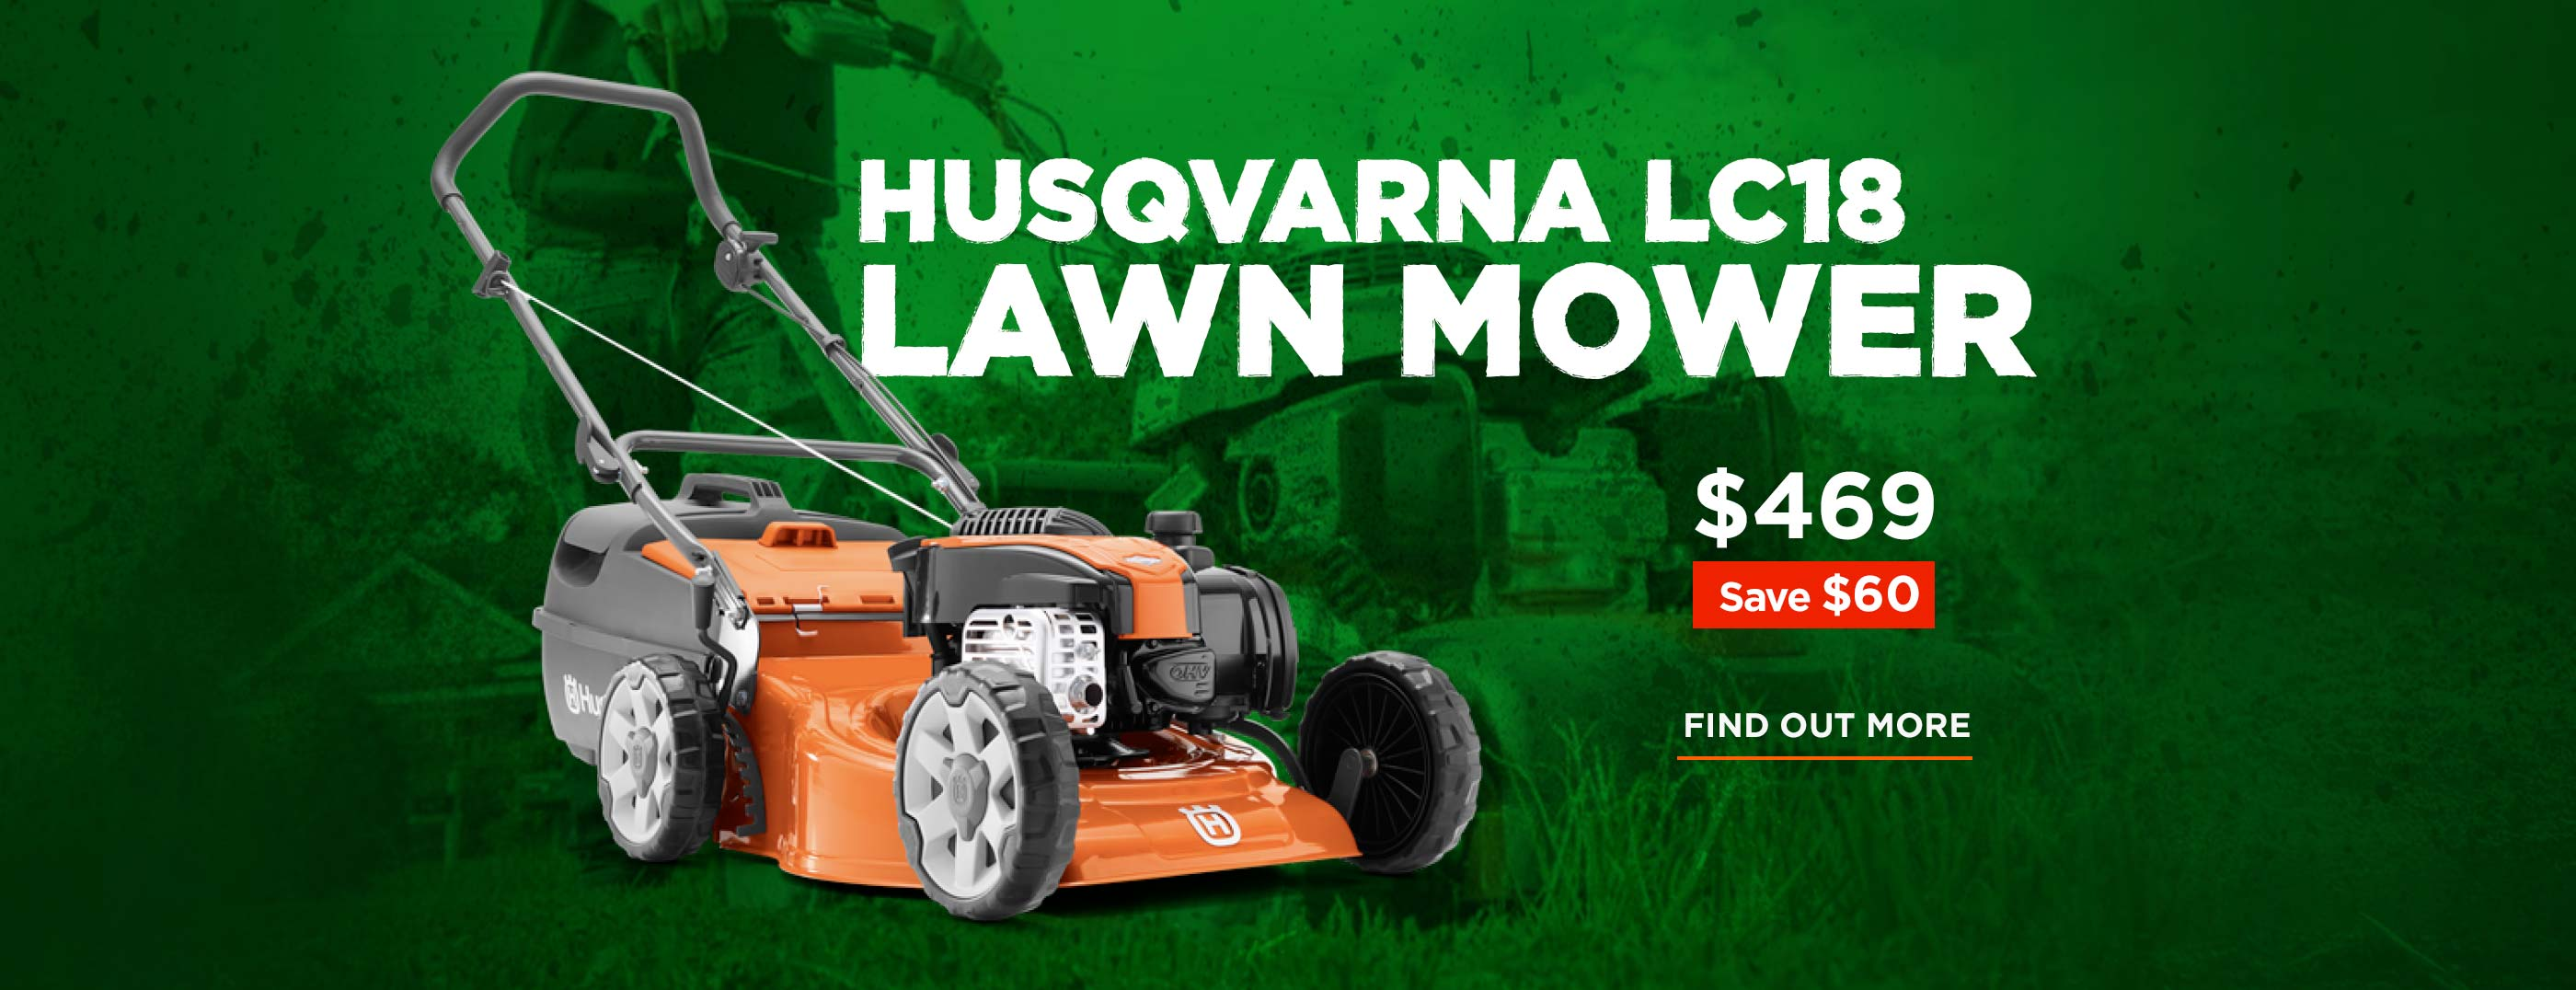 Husqvarna LC18 Lawn Mower Save $60, now $469!